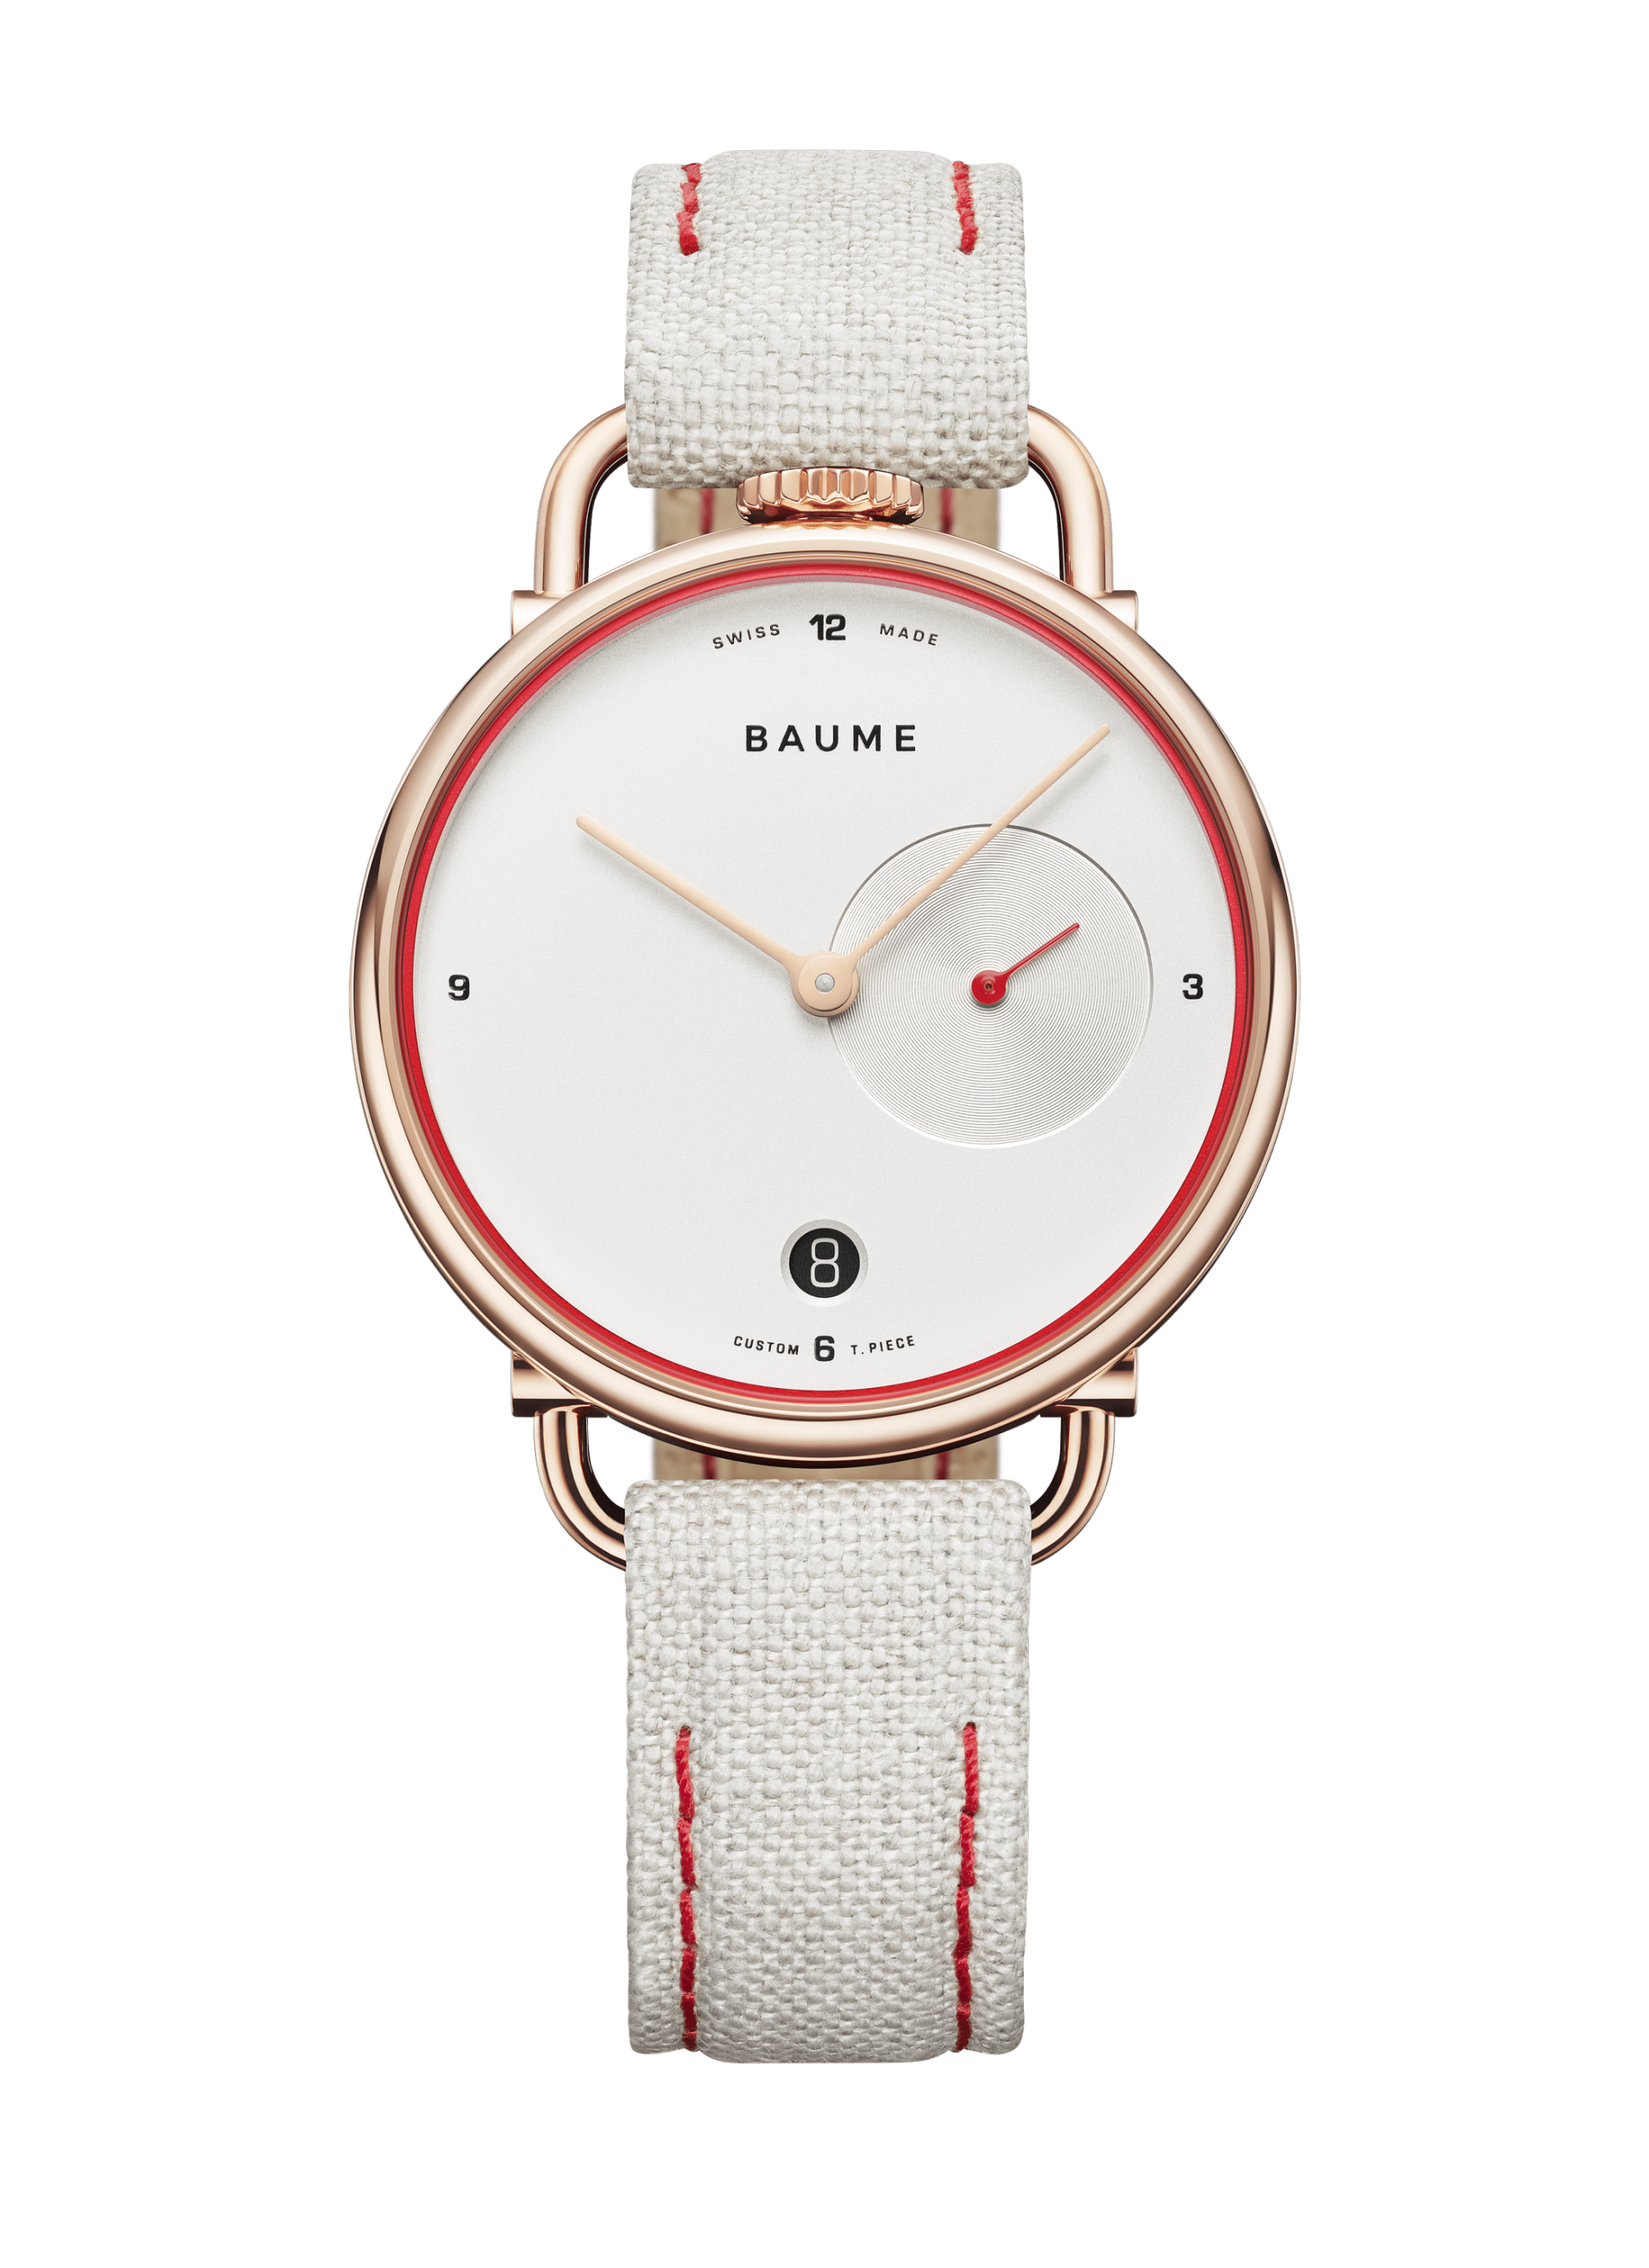 Baume 10602 Watch for ladies | Check Prices on Baume & Mercier Front -